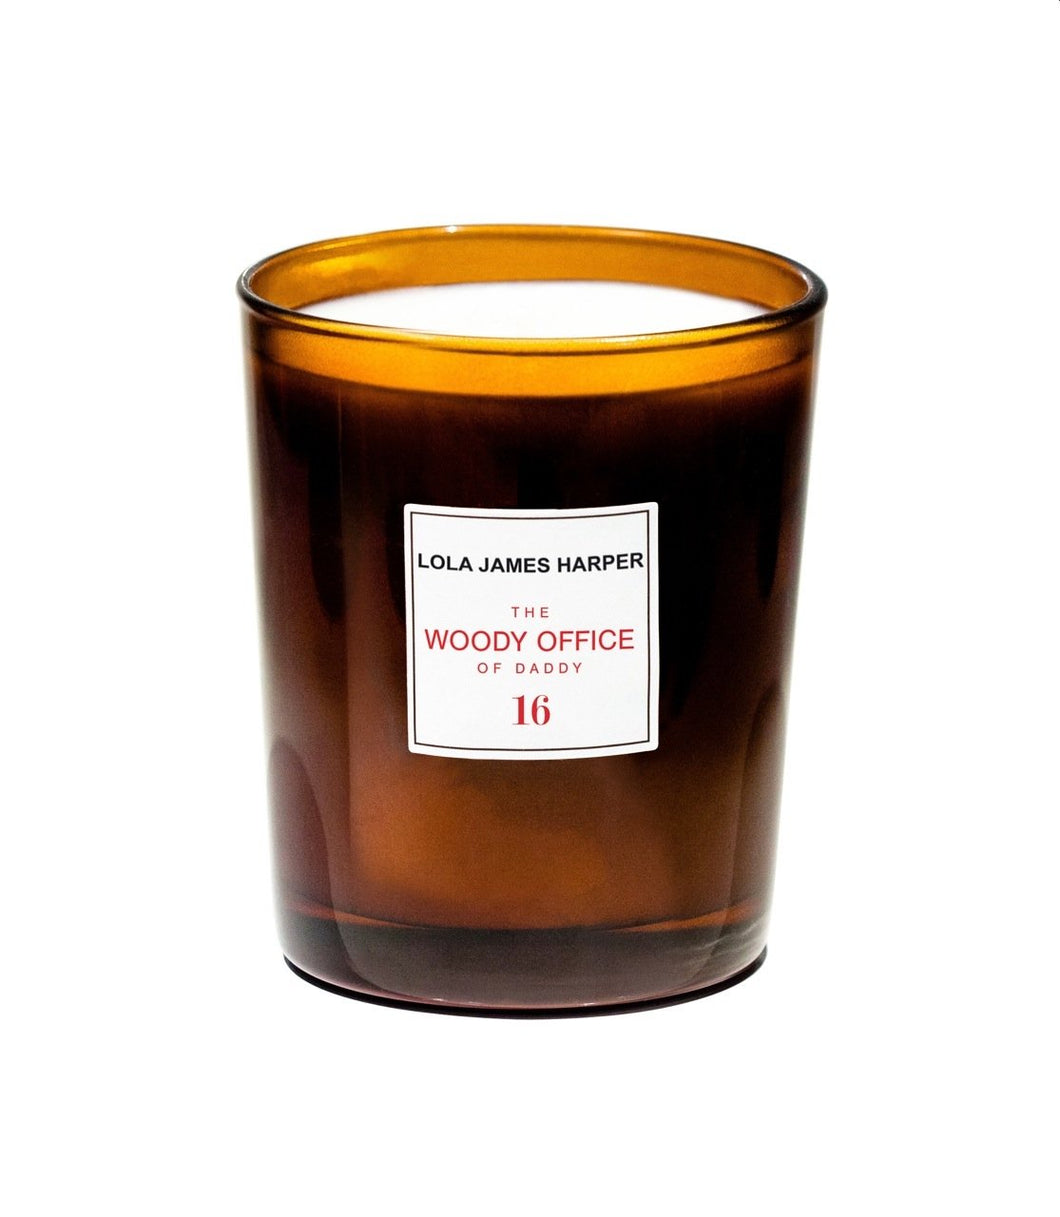 Bougie Parfumée Lola James Harper - 16 THE WOODY OFFICE OF DADDY